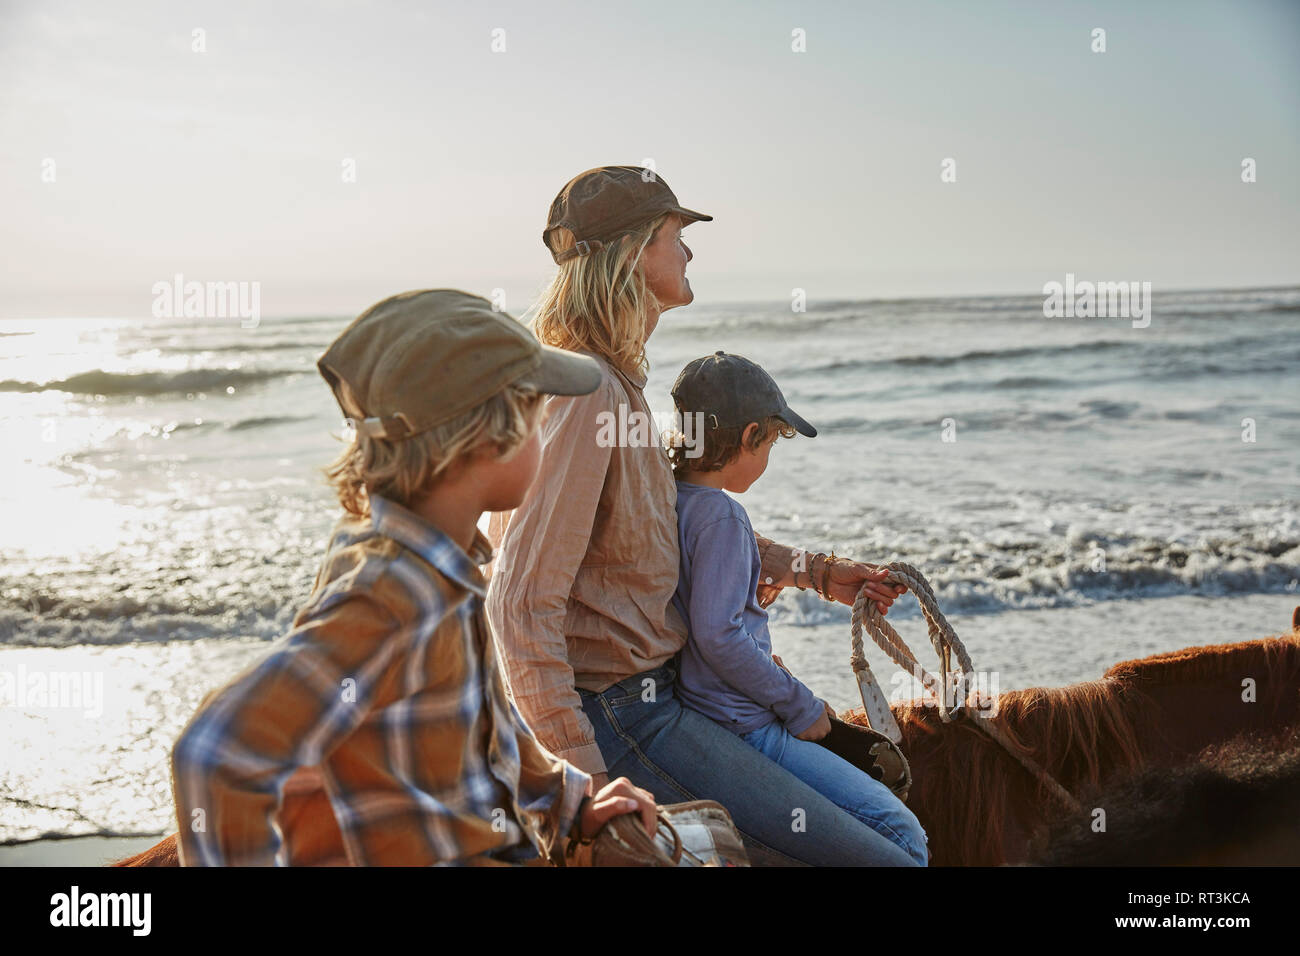 Chile, Vina del Mar, mother with two sons riding horses on the beach Stock Photo